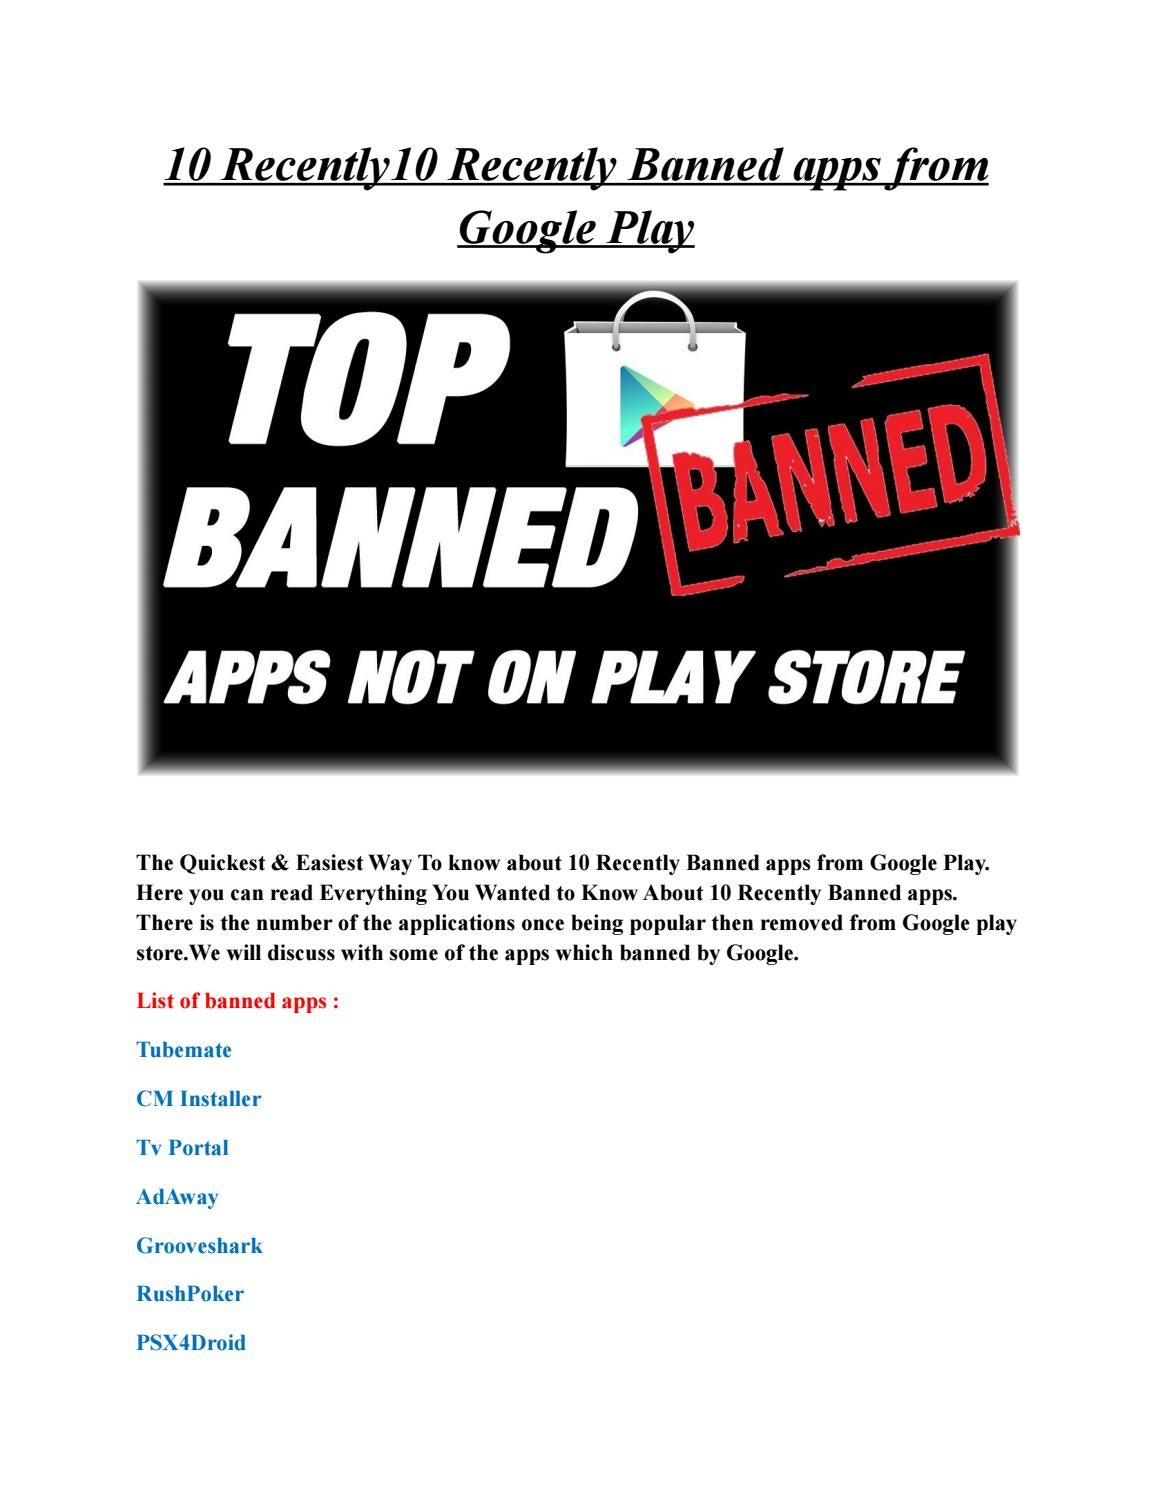 OMG! 10 Recently Banned apps from Google Play Ever! by